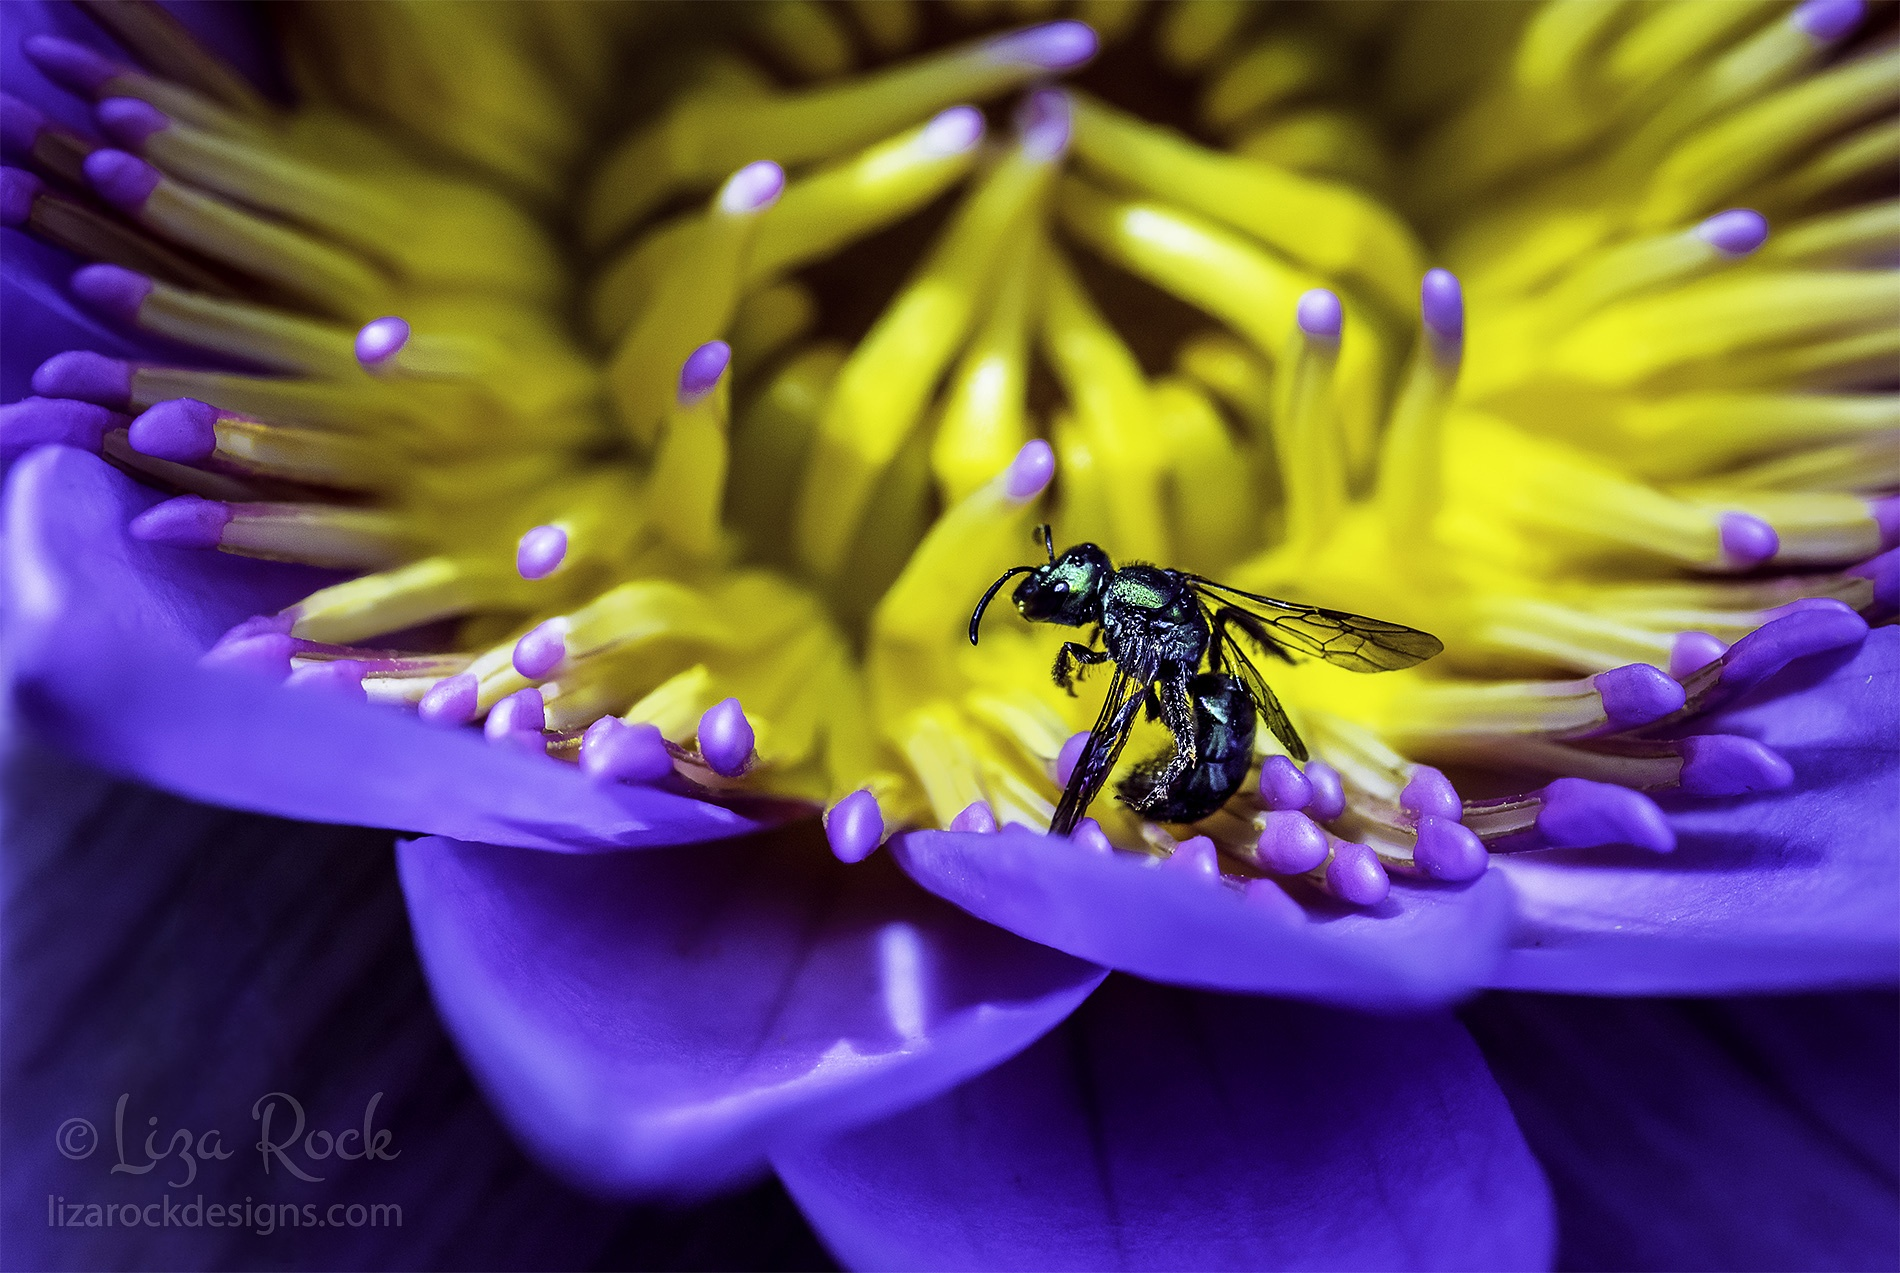 Intoxicated by Beauty by LRock